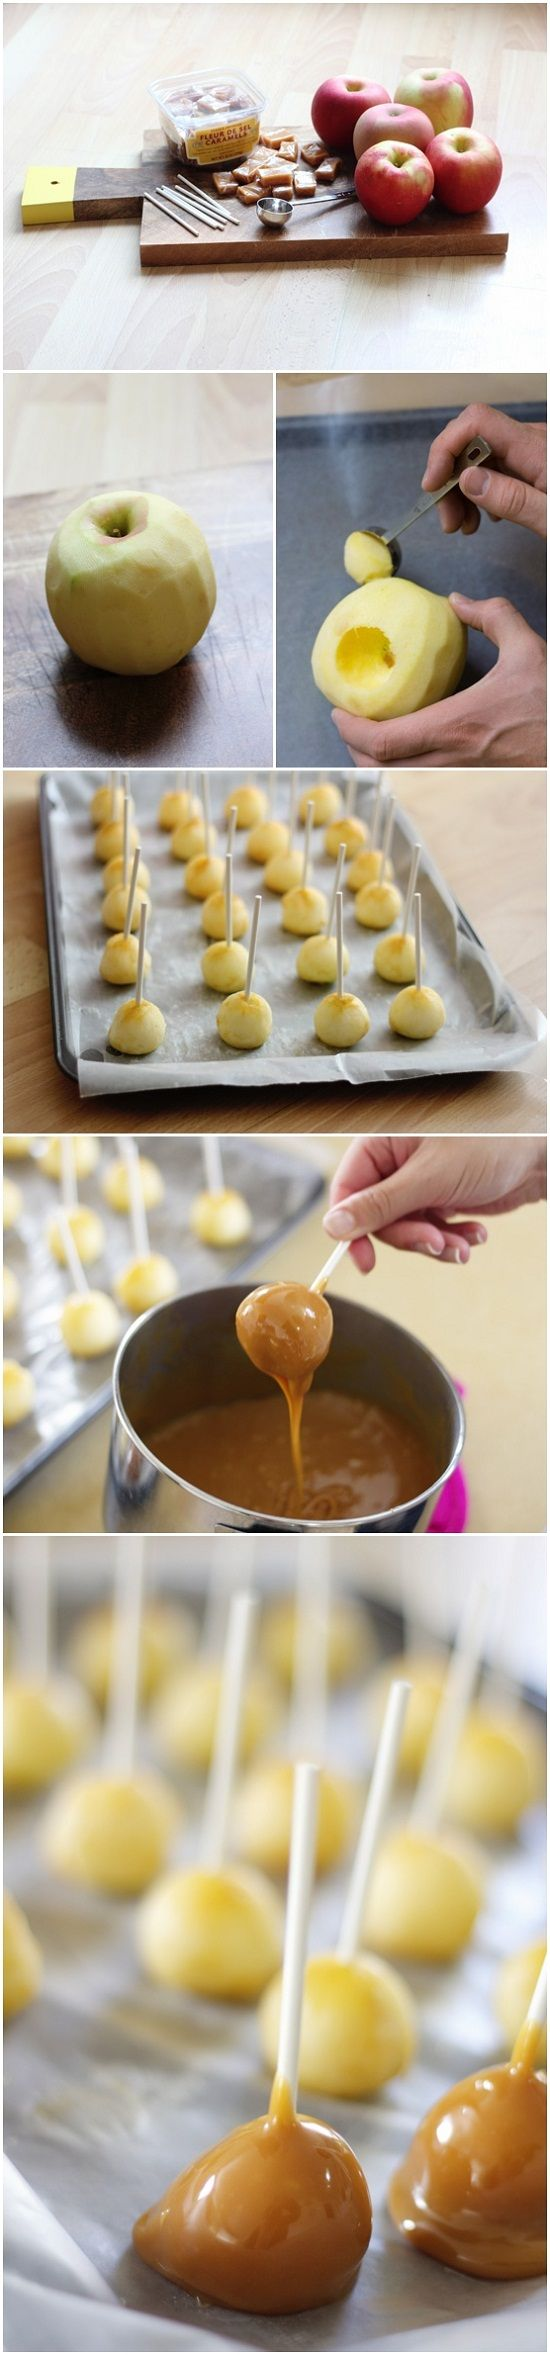 HA! Totally dangerous, would eat 'em all up -- DIY Mini Caramel Apples #appetizer #party #movienight